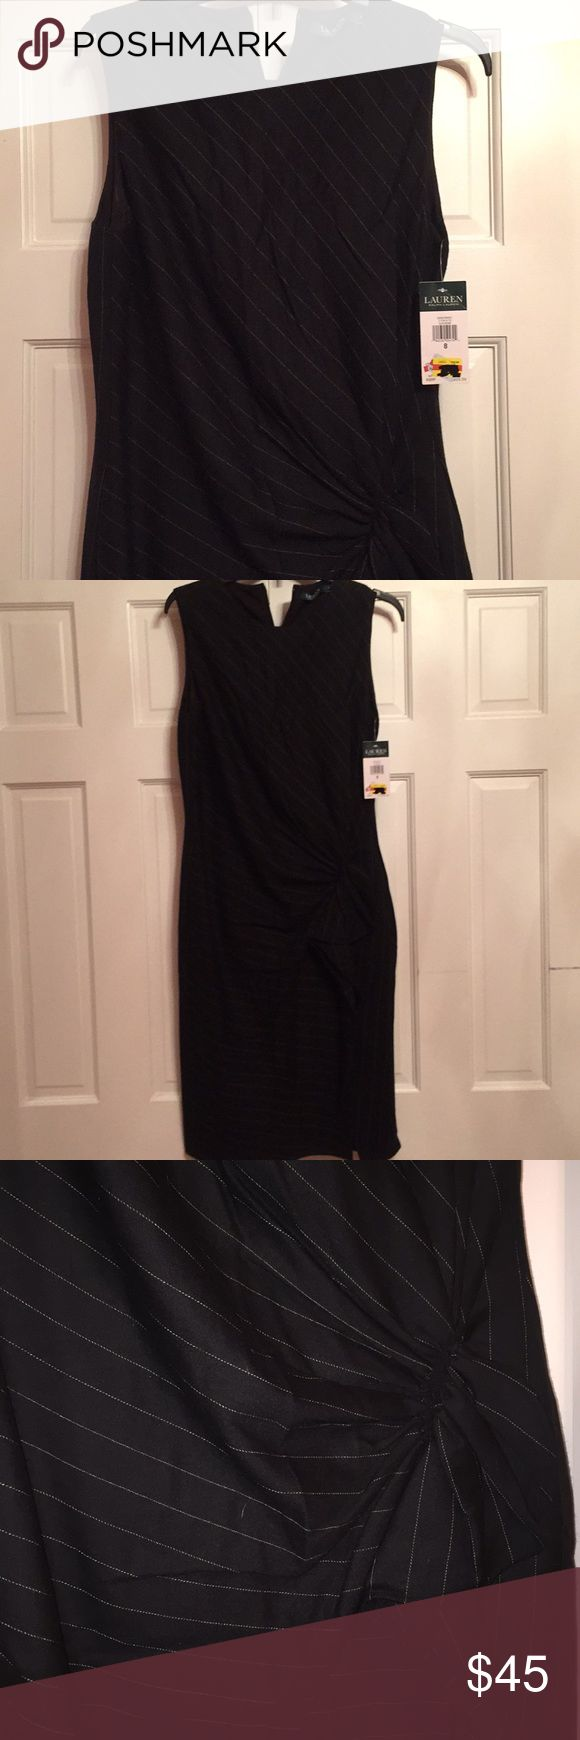 Ralph Lauren dress NWT Up for consideration is a Ralph Lauren dress. If you could define business elegance this dress would be it. It is new with tags.  It is black and white color.  It is sleeveless. The fabric is lightweight and is fully lined. The dress is fitted top with a round neck and gather just below the waist (conceals flaws) and a slit from the gather down. It is very flattering.  The 8 was too tight for me so I sized up. Always get compliments when I wear! Lauren Ralph Lauren…